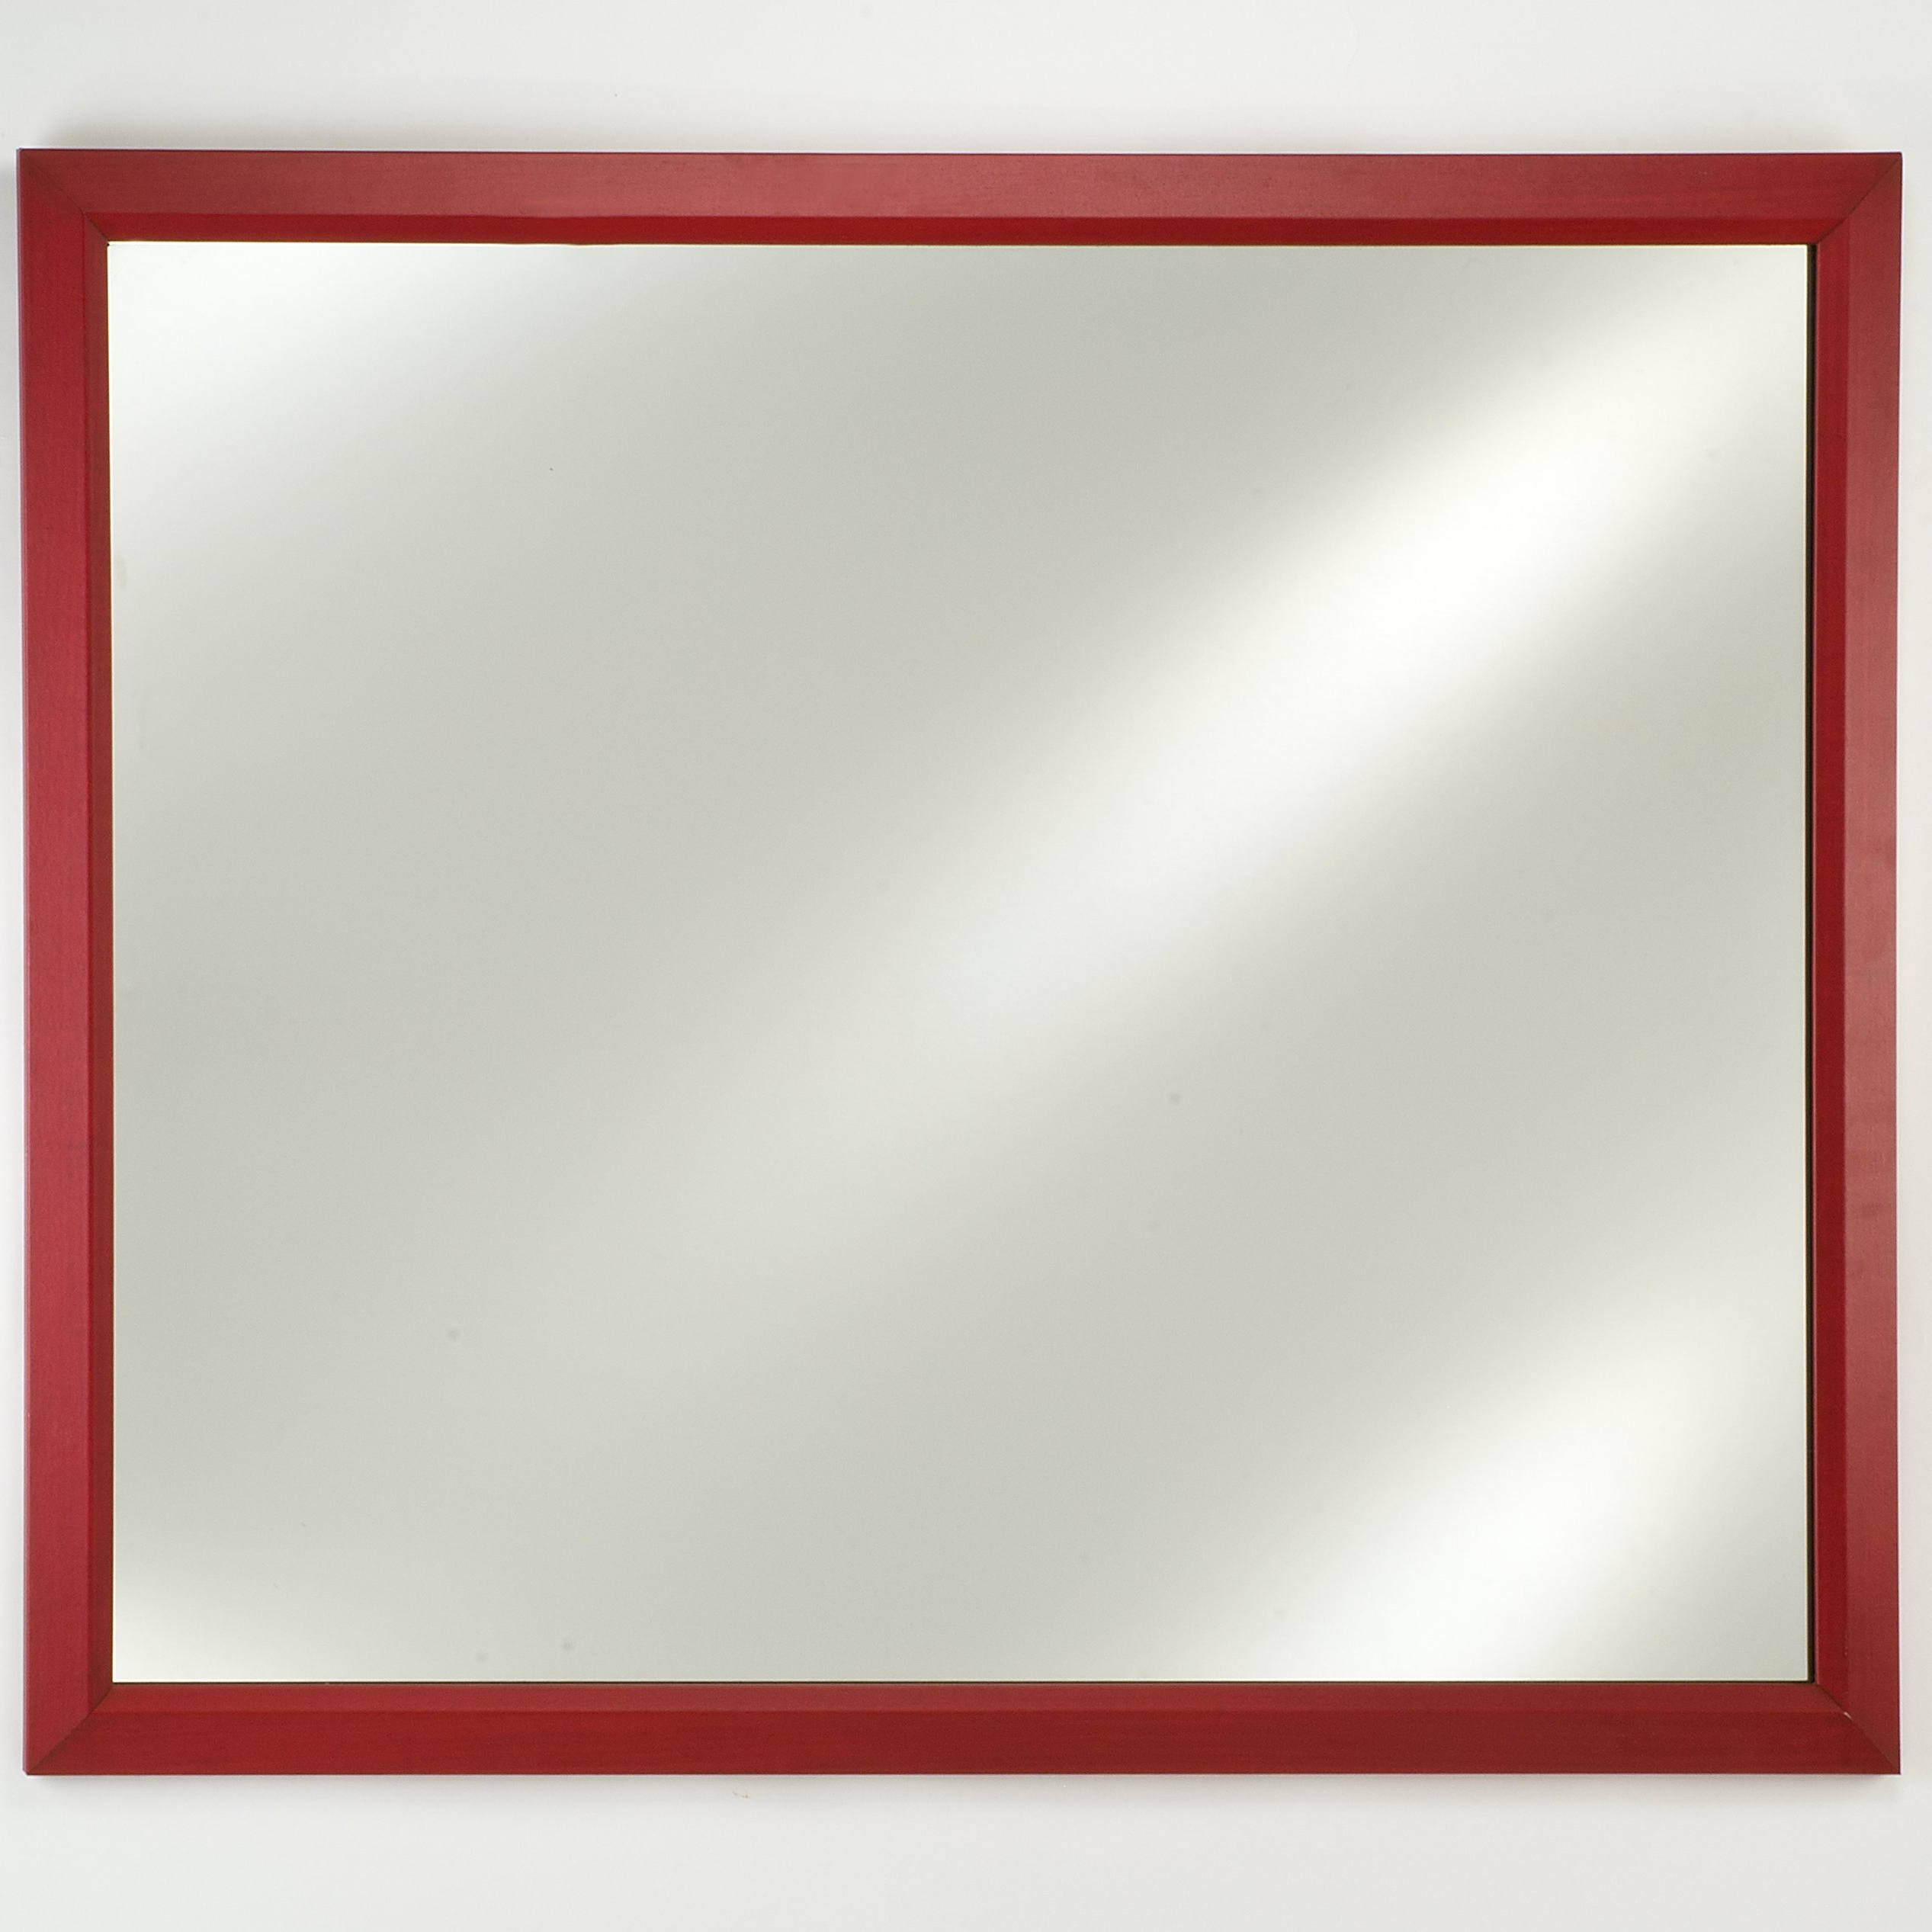 Eagle Edge Plain Wall Mirror For Well Known Plain Wall Mirrors (Gallery 1 of 20)